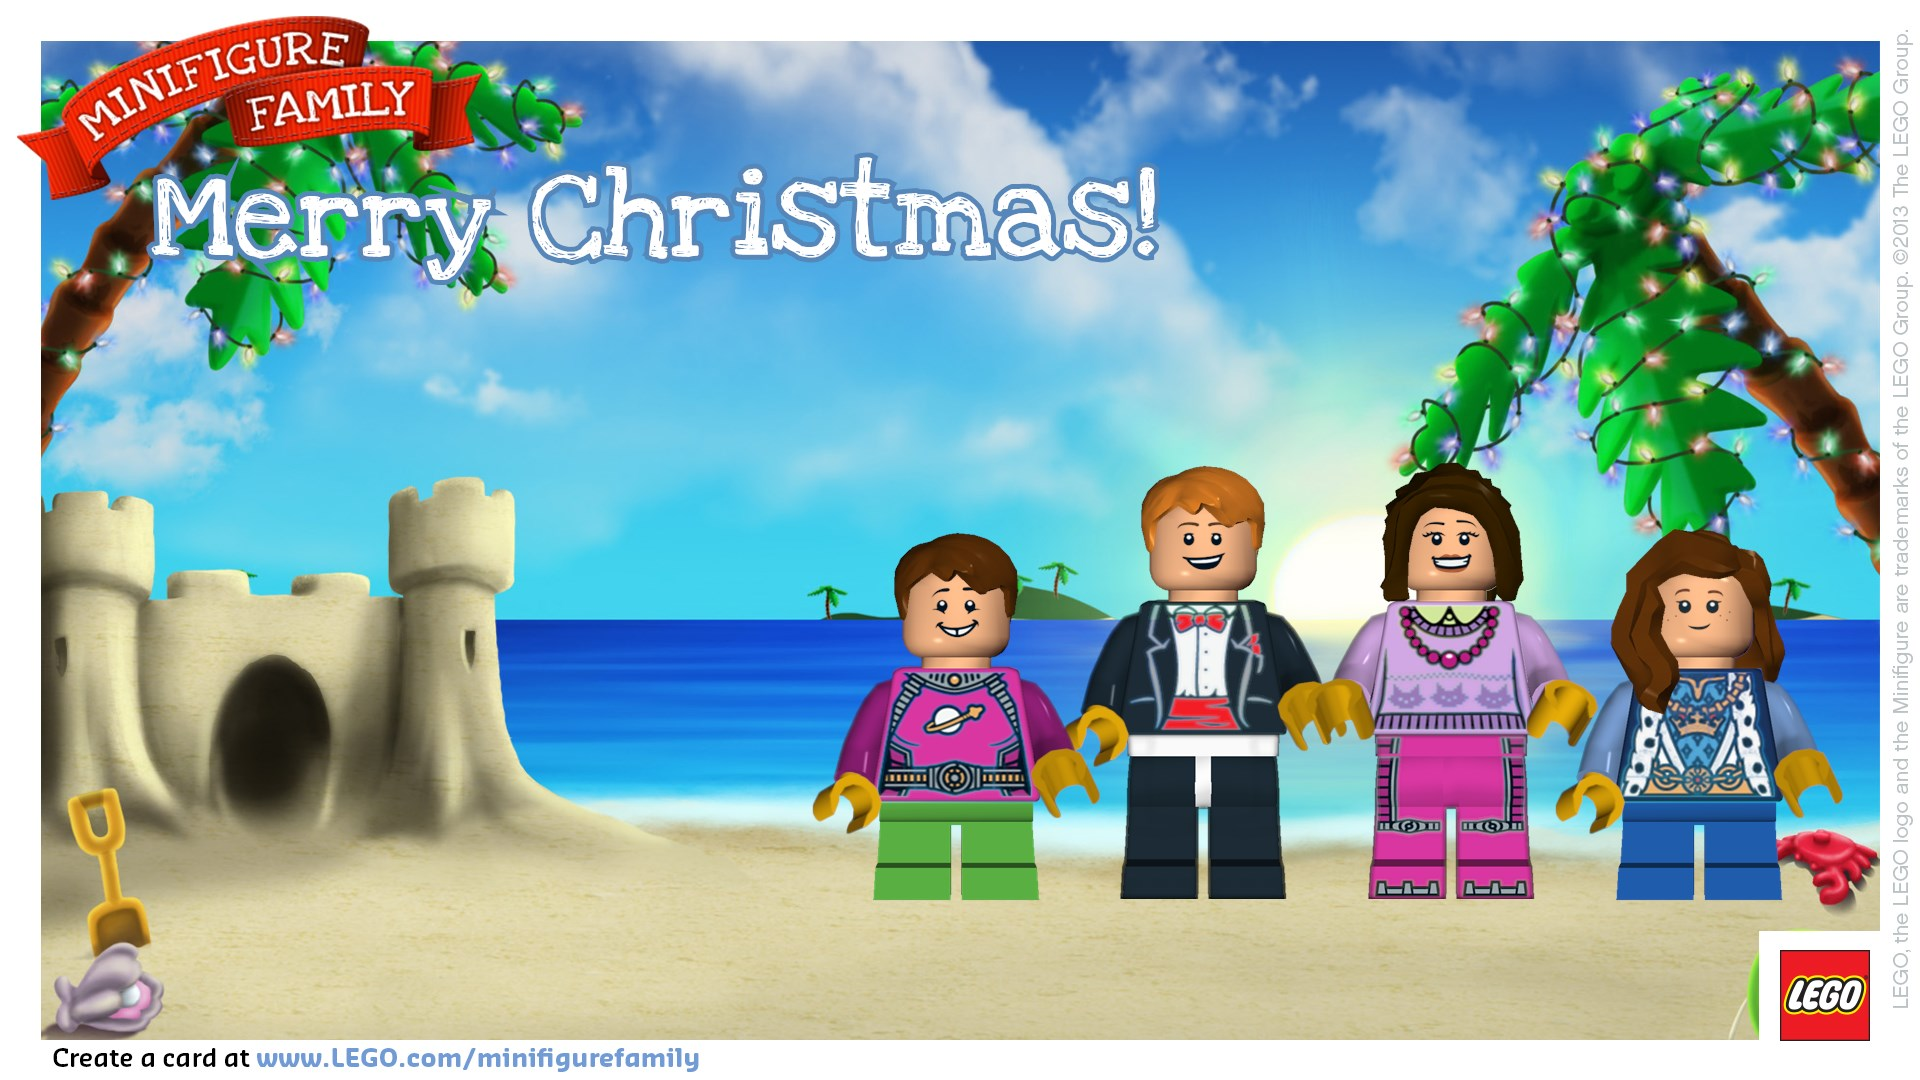 LEGO Minifigure Family Card